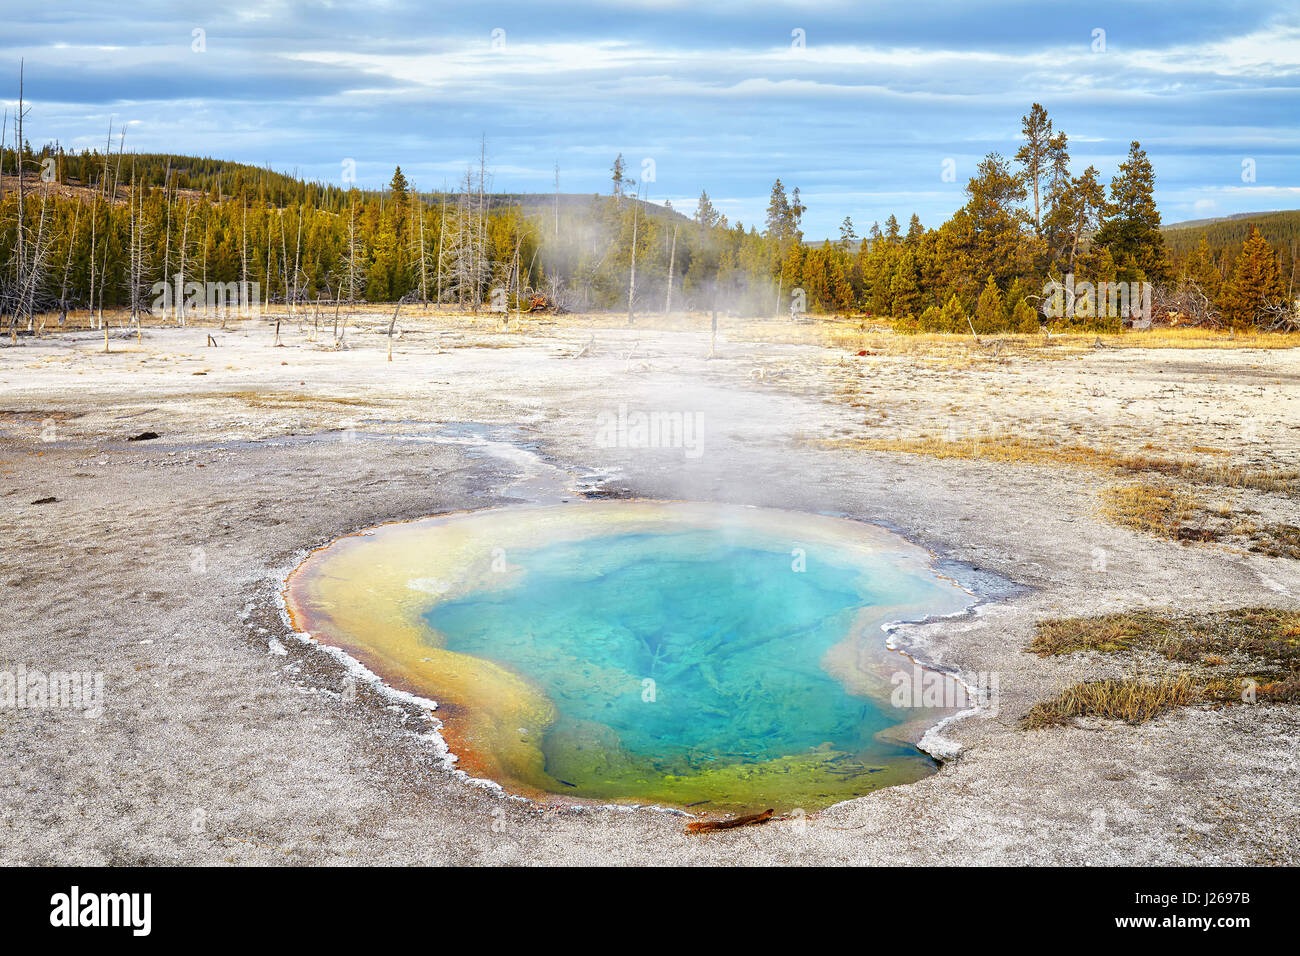 Yellowstone National Park, Wyoming, USA. - Stock Image